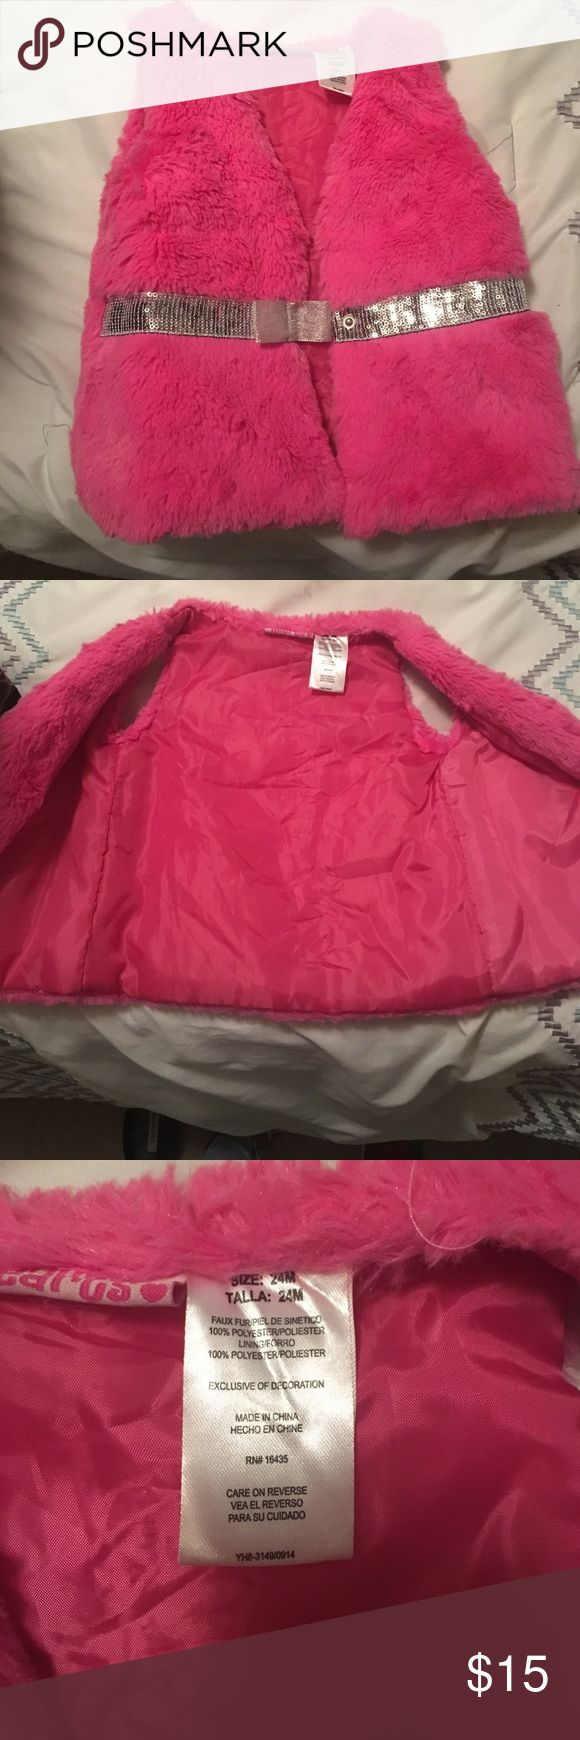 Furry pink vest size 24 months. This beautiful pink furry vest has barely been worn. No stains or rips. EUC. Other